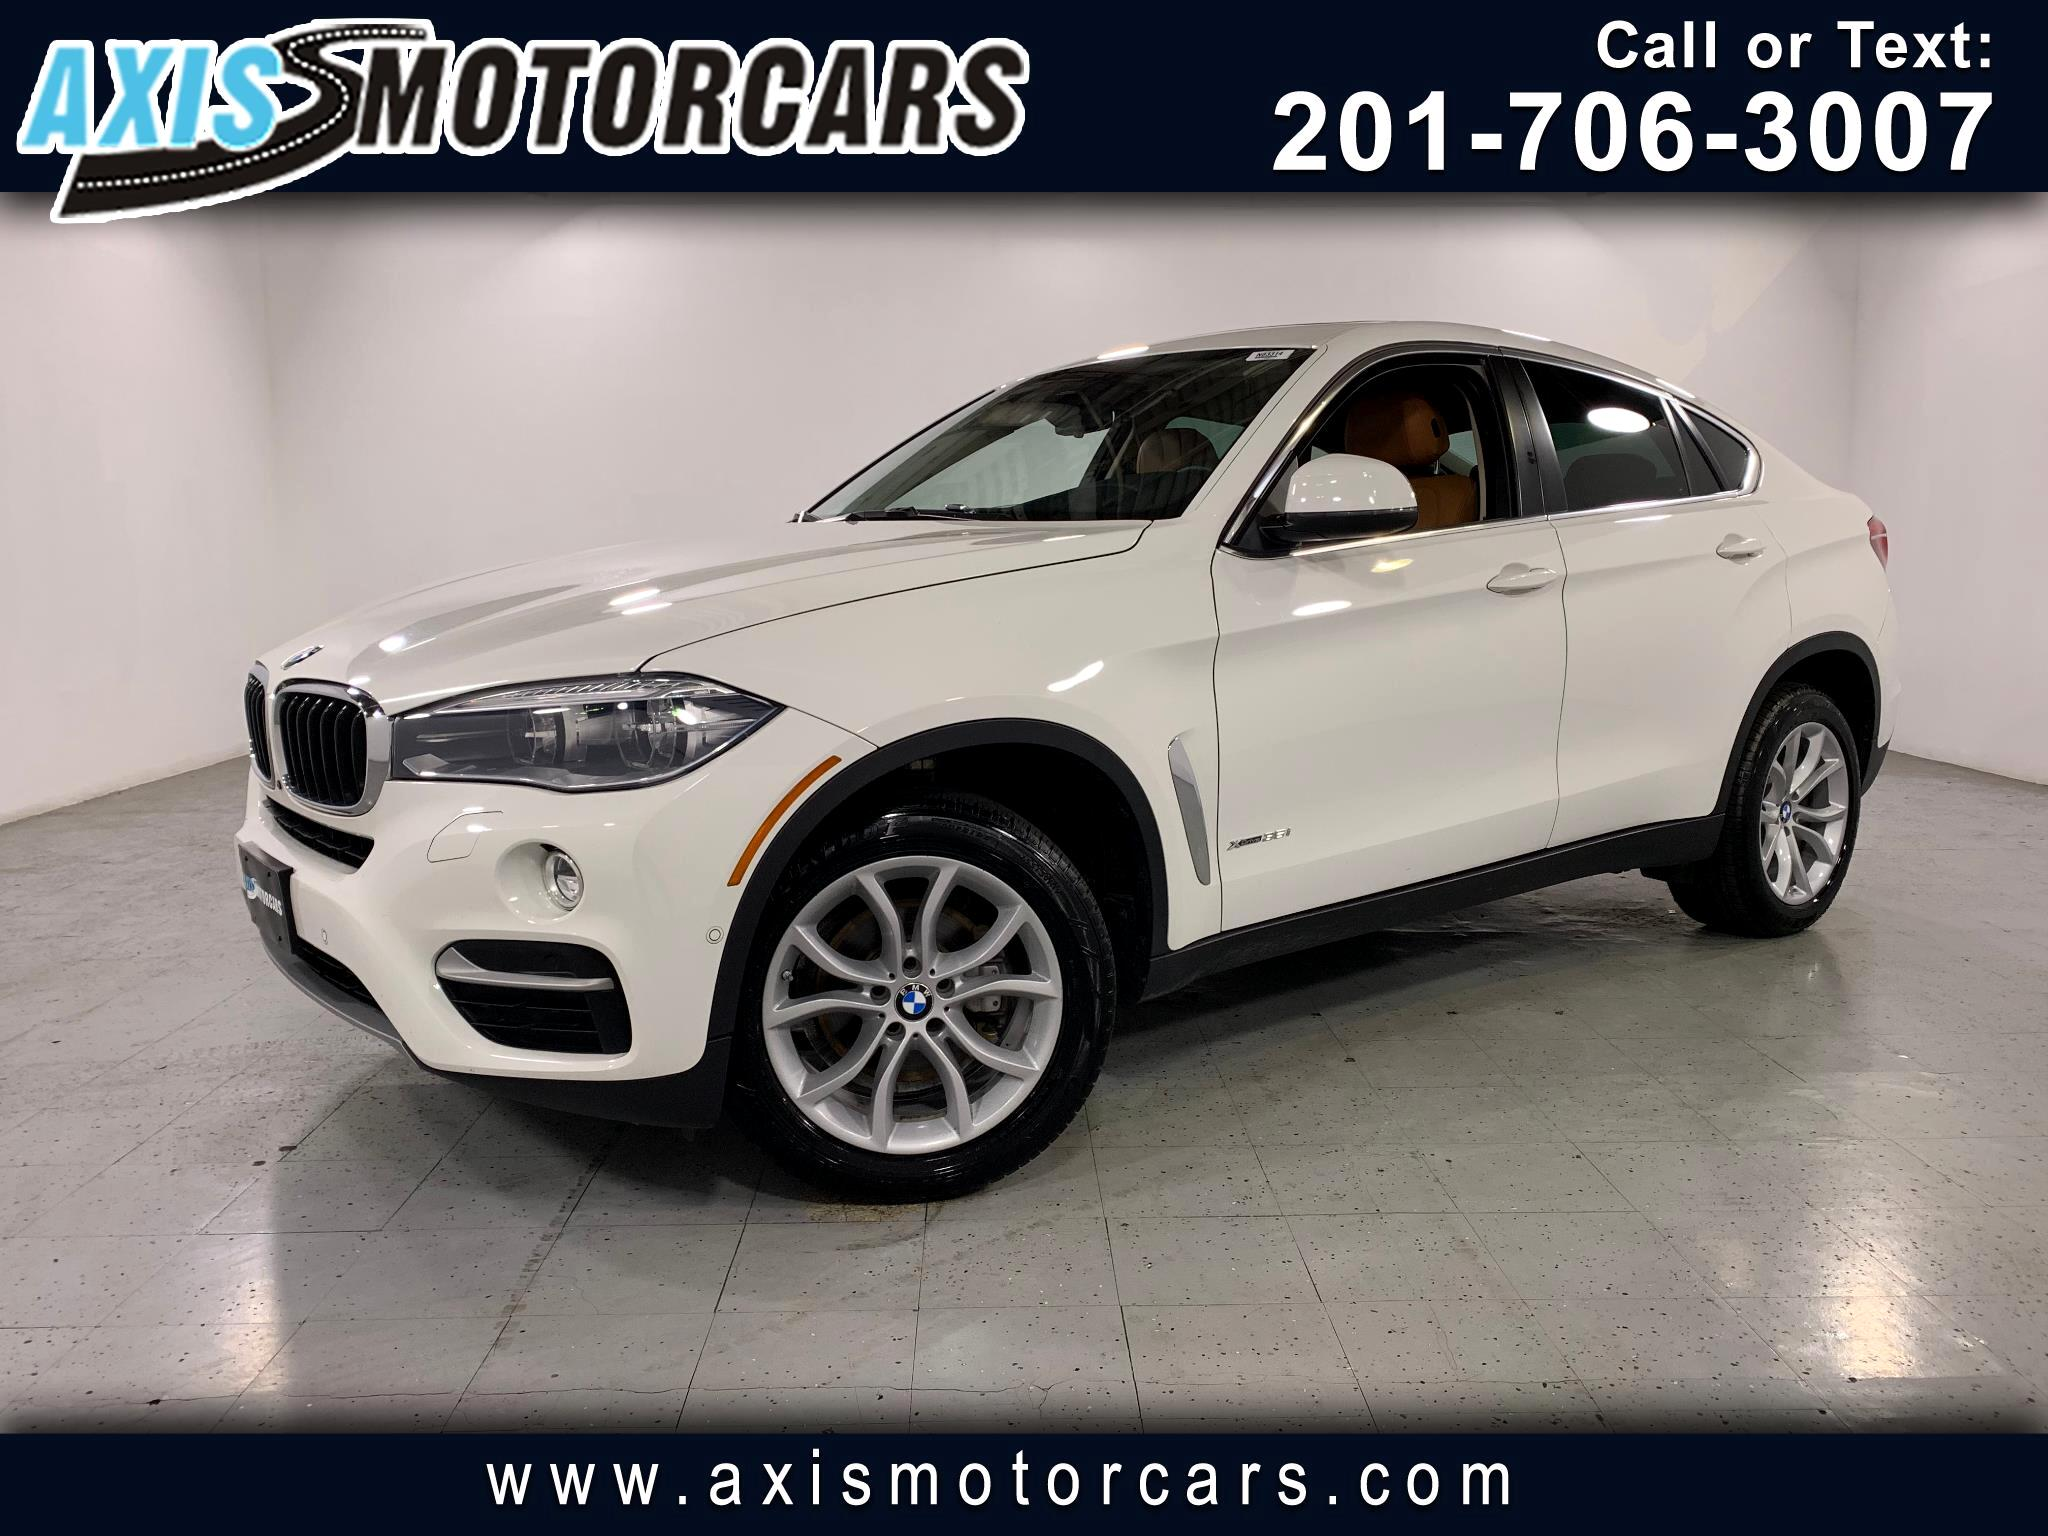 2016 BMW X6 w/Harman Kardon Sound Backup Camera 360 Navigation